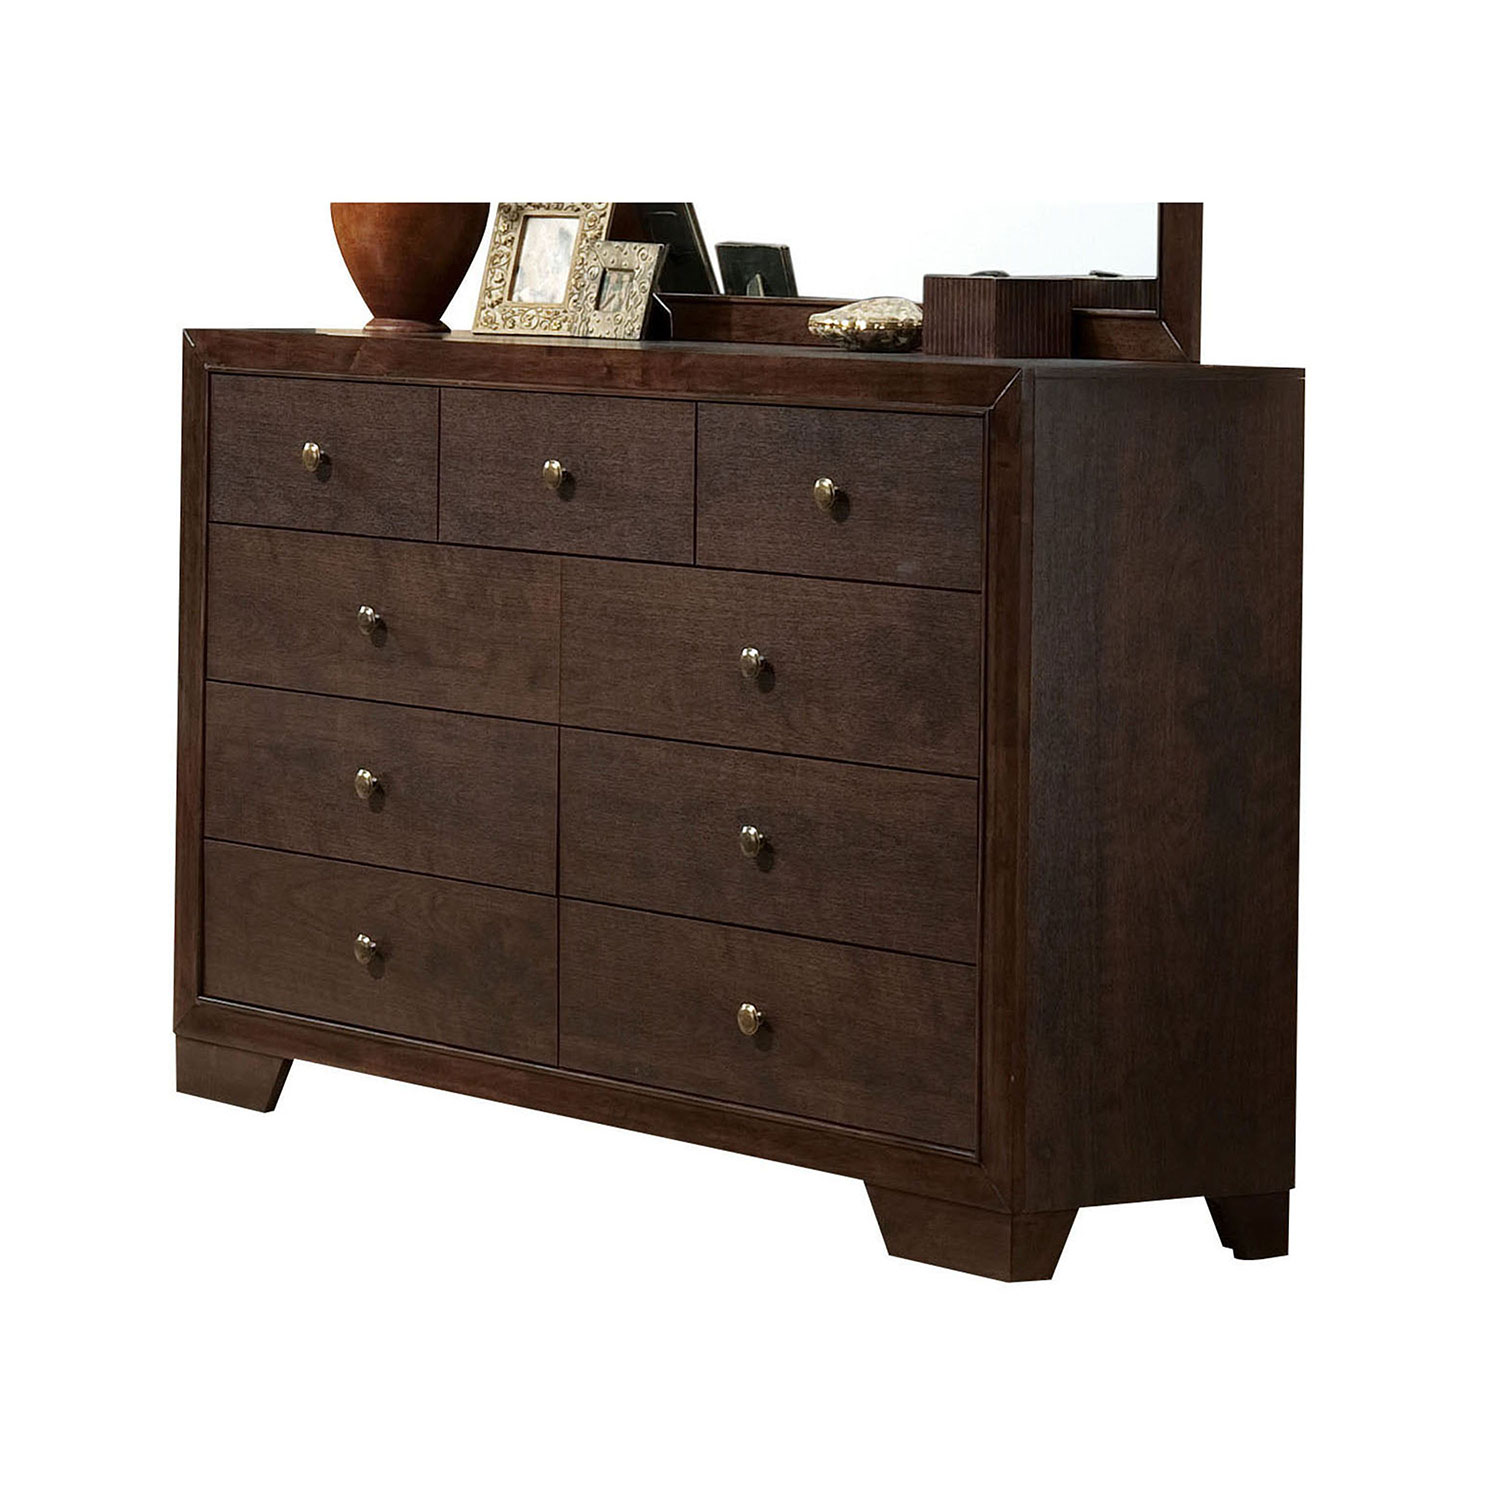 Acme Madison Dresser - Espresso